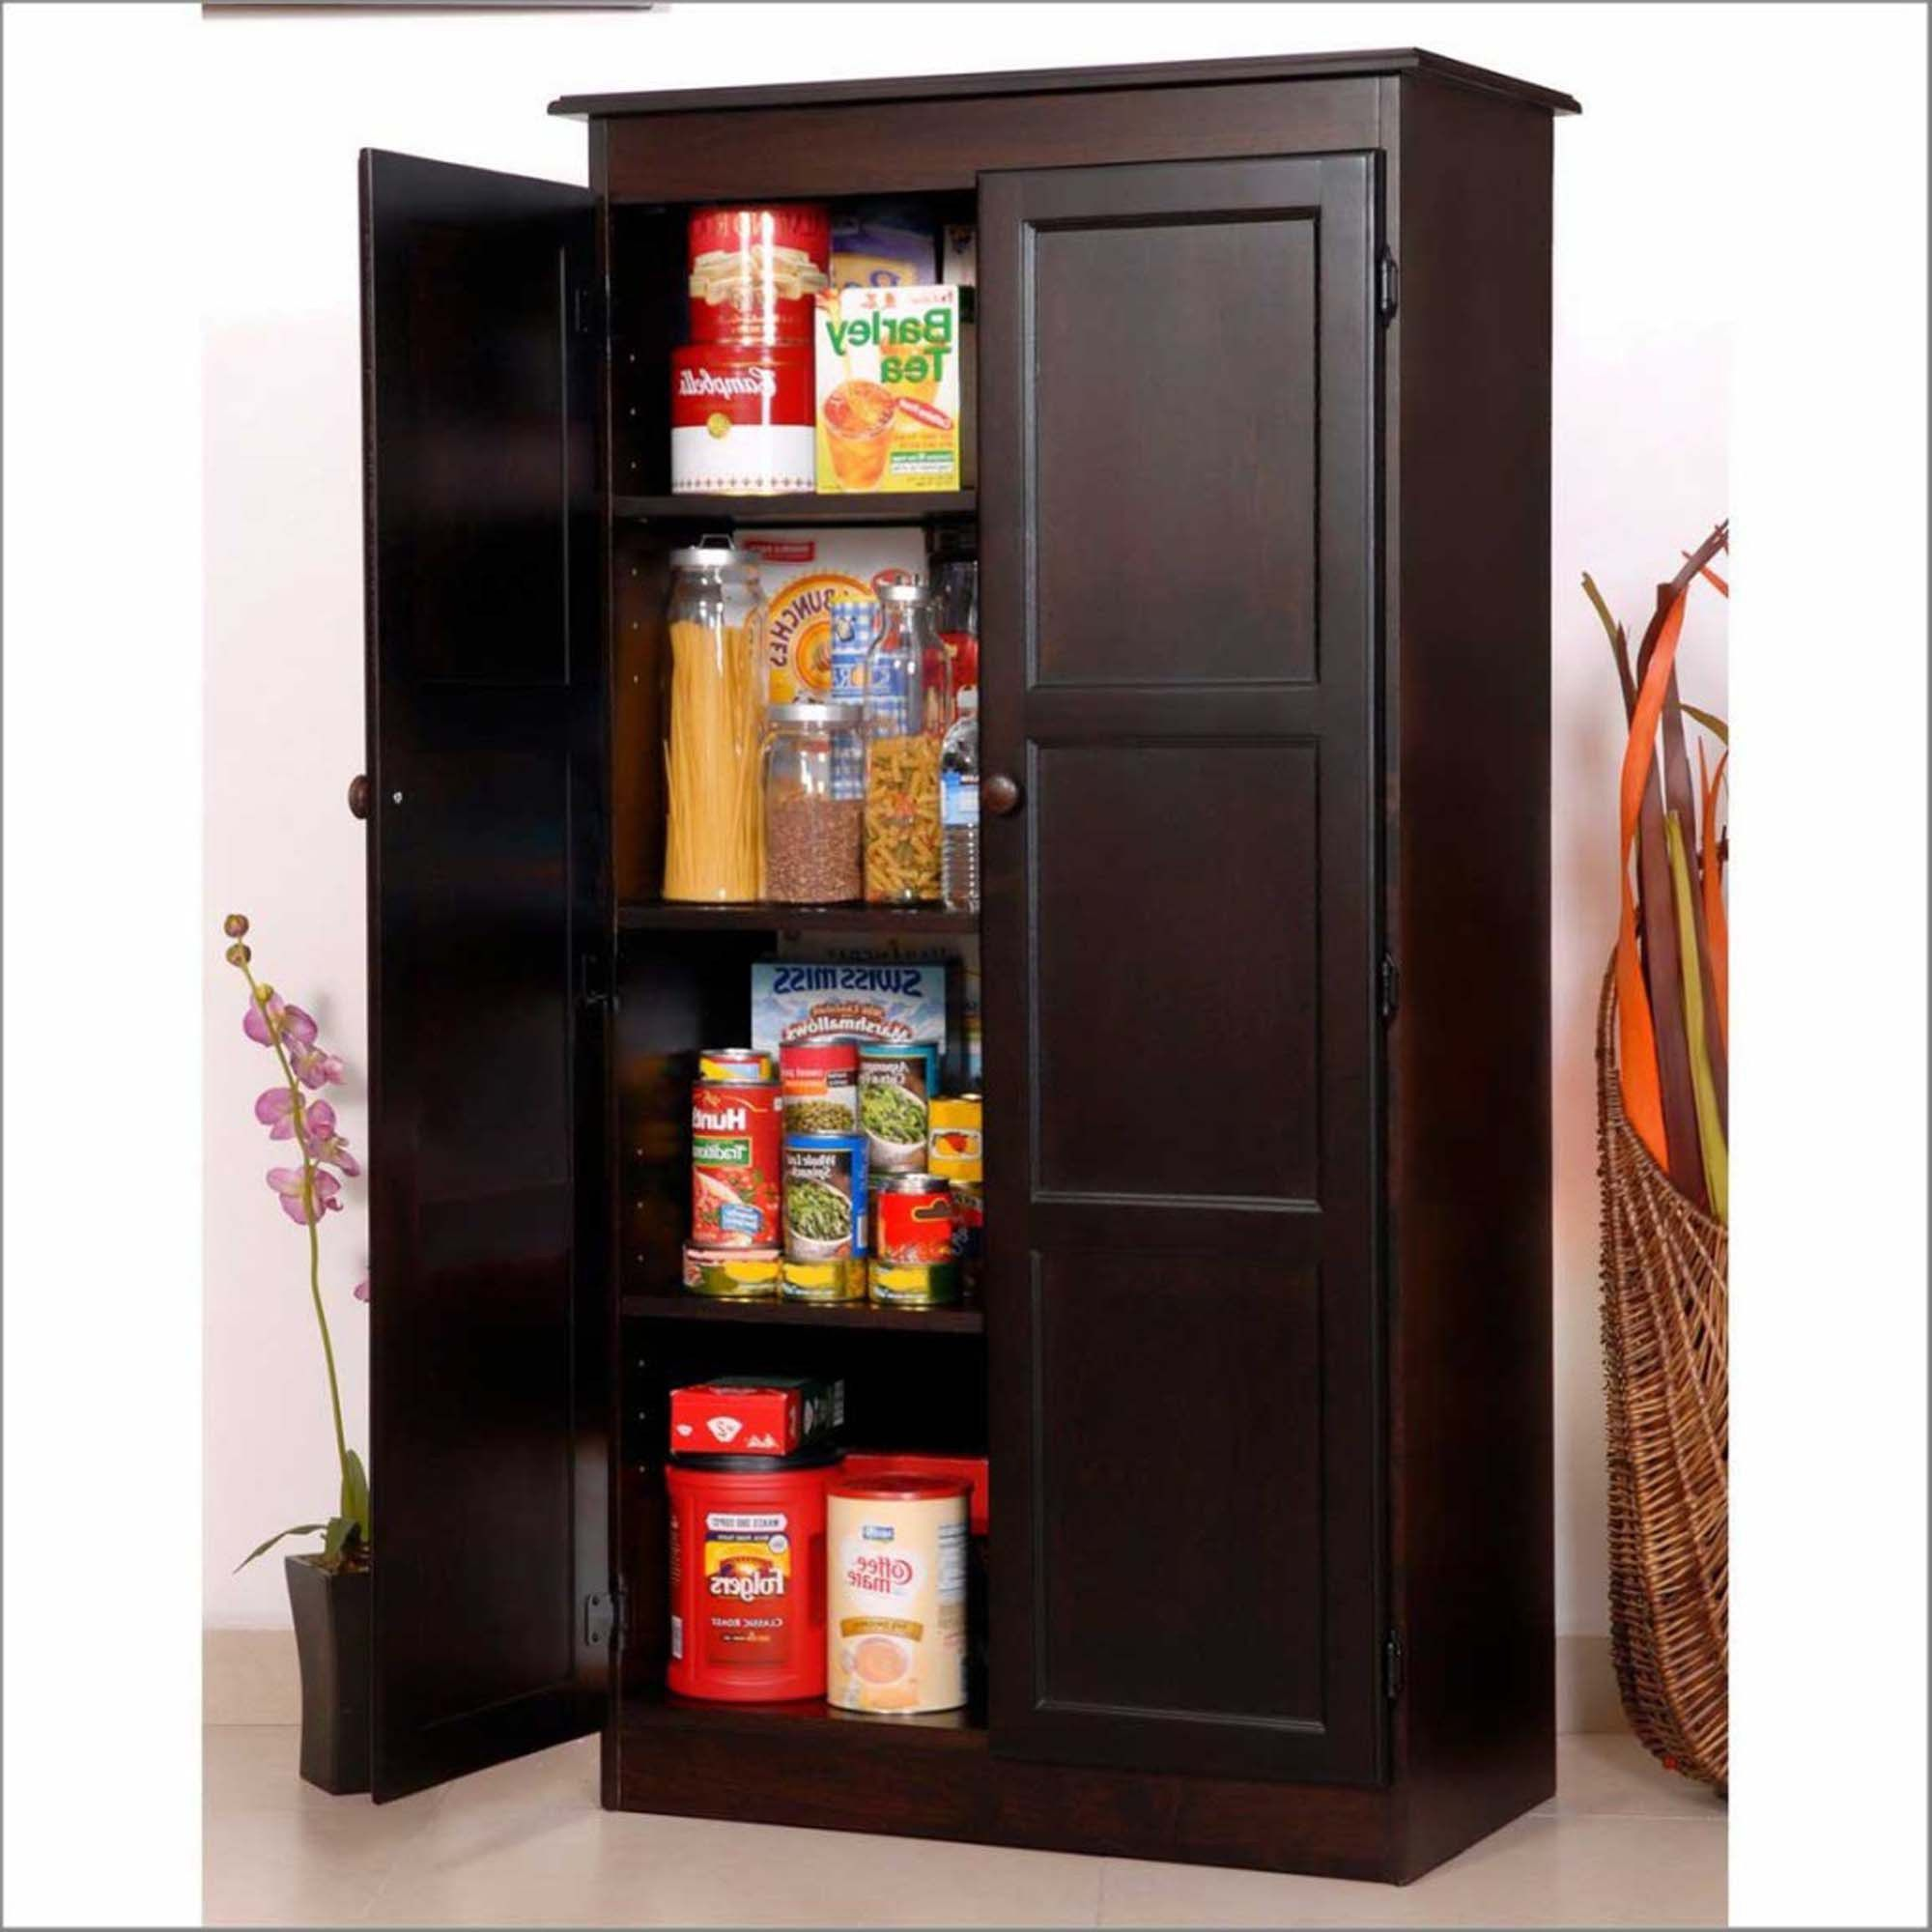 Efficient Free Standing Kitchen Cabinets Best Design For Every Style See More Ideas Id Pantry Cabinet Free Standing Standing Pantry Pantry Cabinet Home Depot